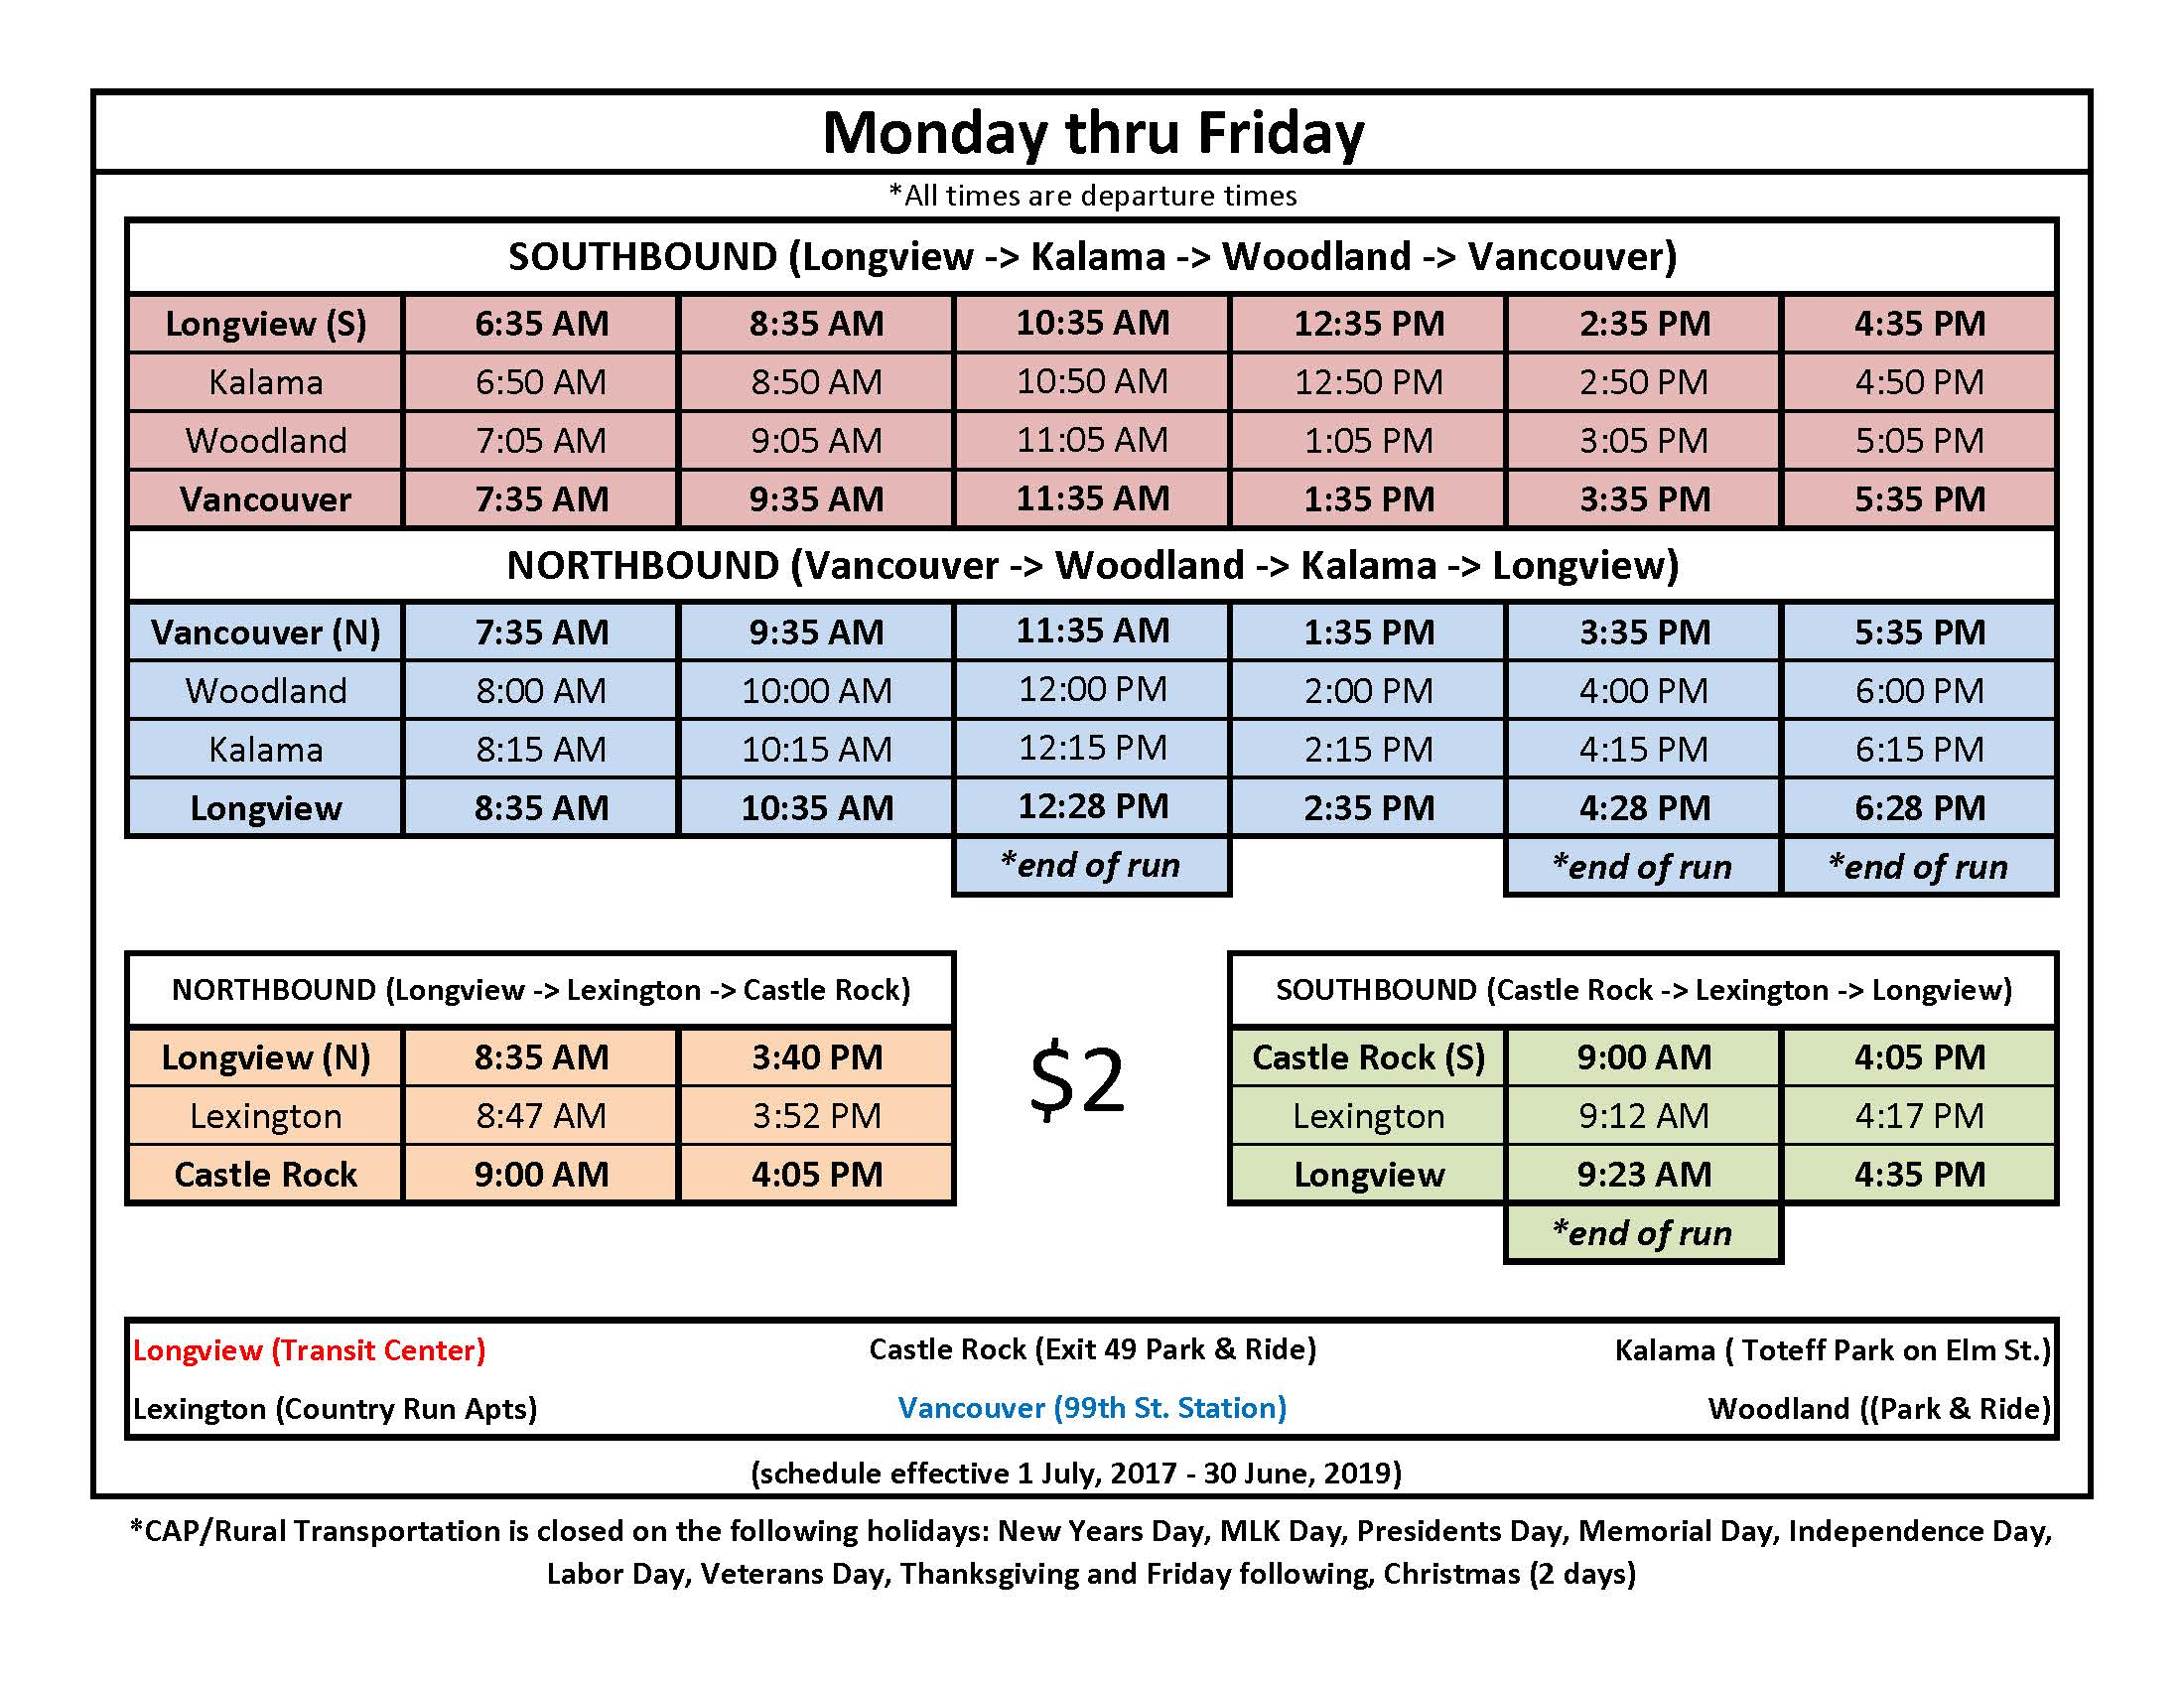 CAP Rural Transportation Schedule